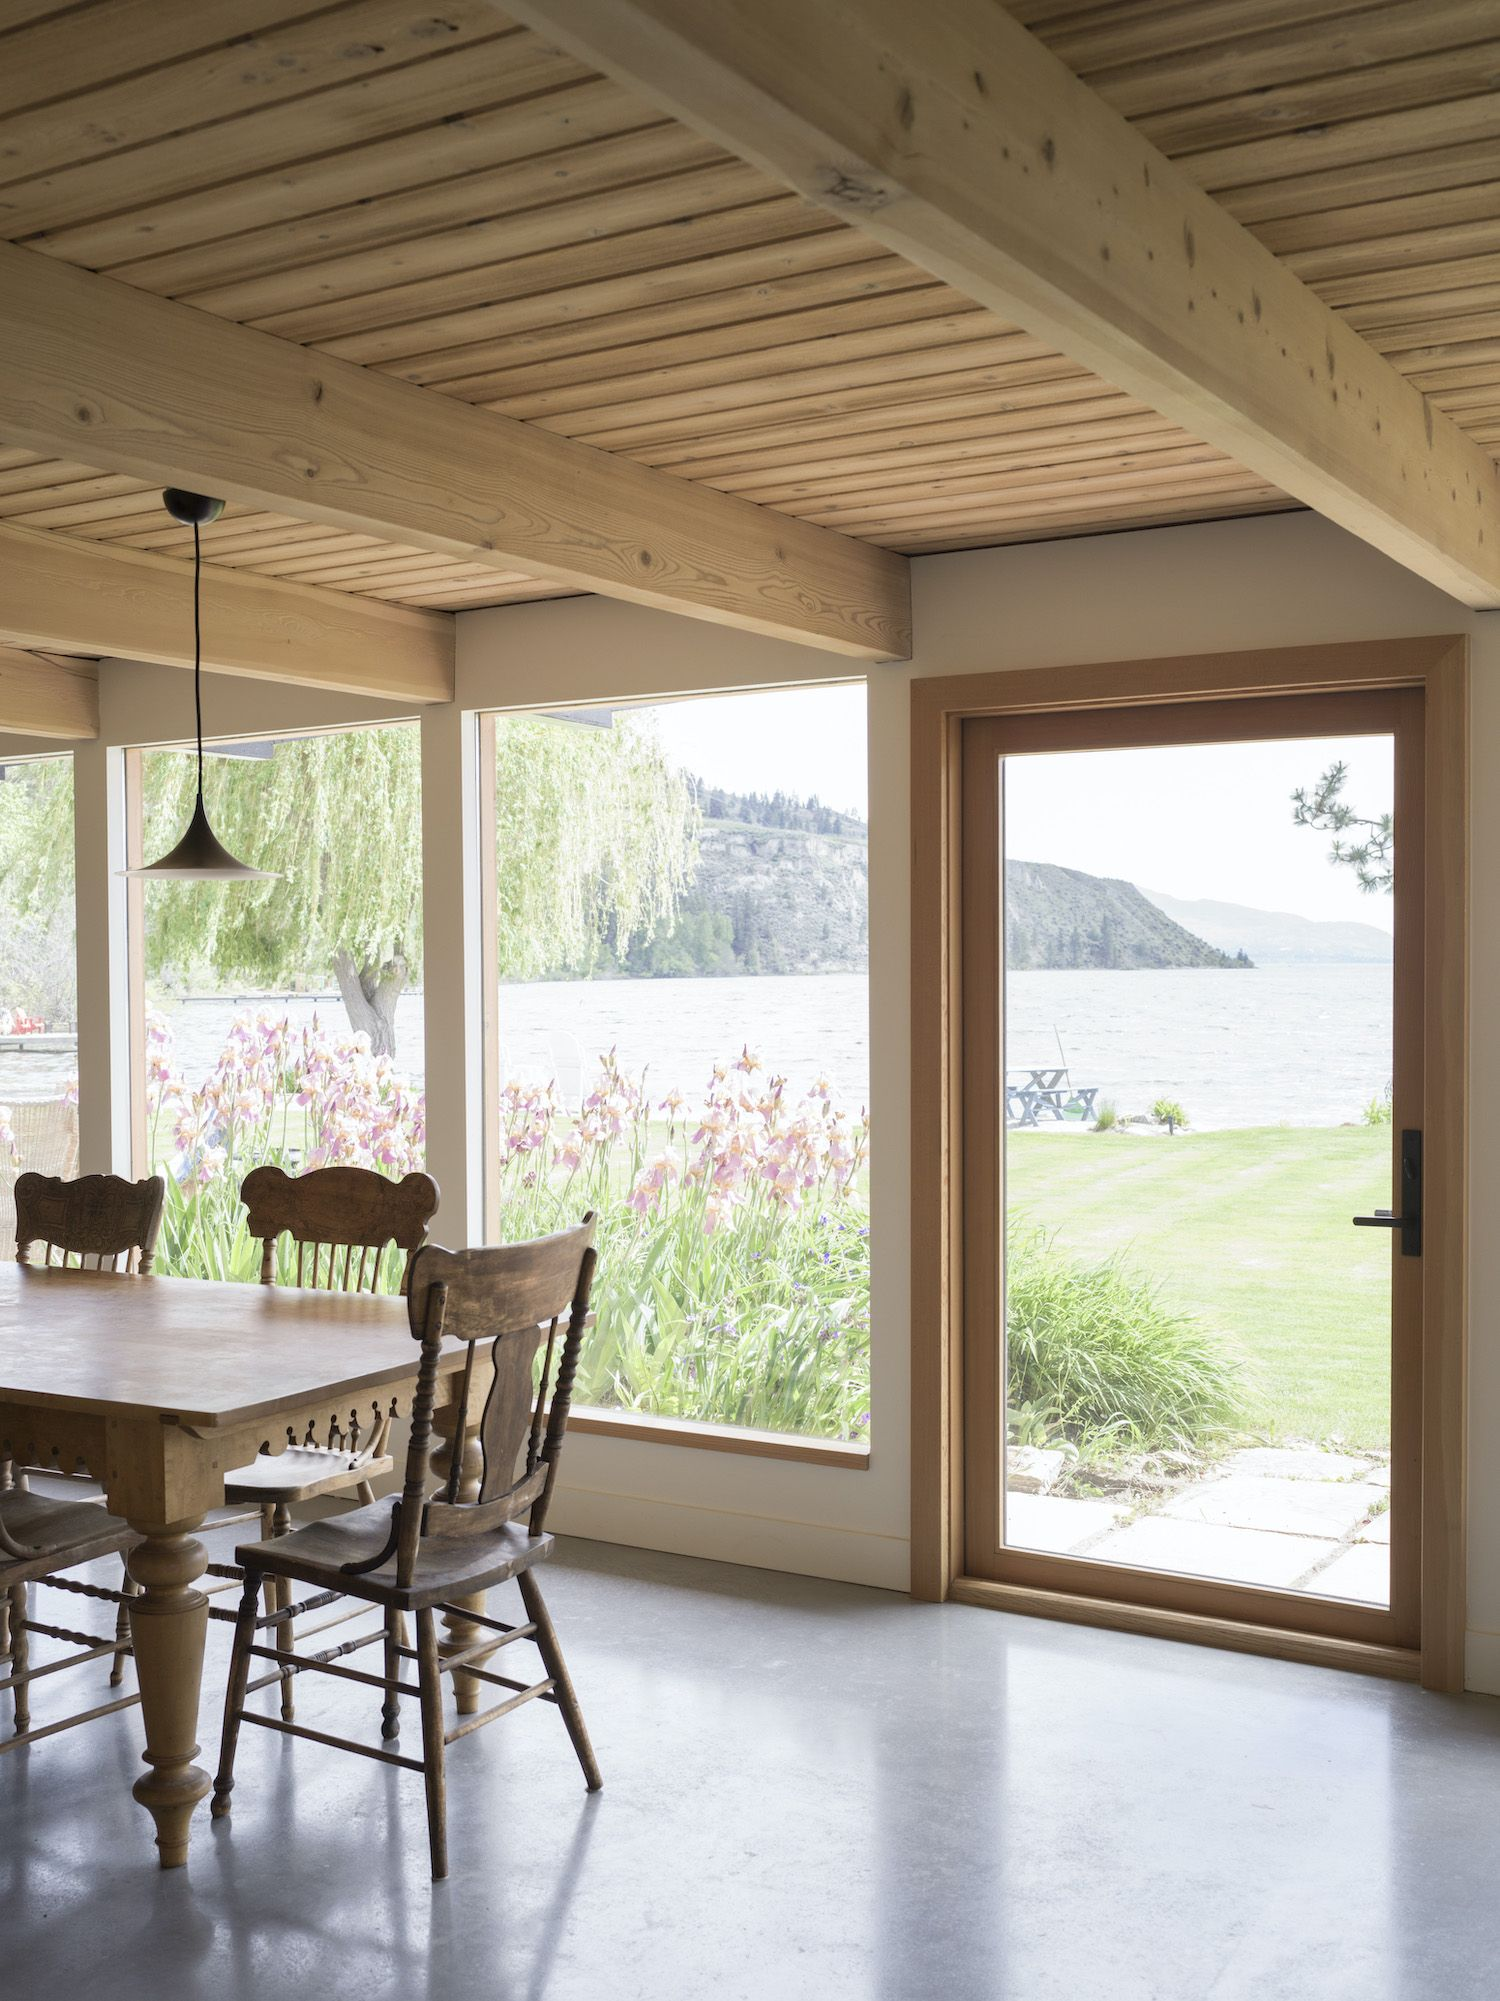 Naramata Summer House by Olivia Bull and Daniel Garrod